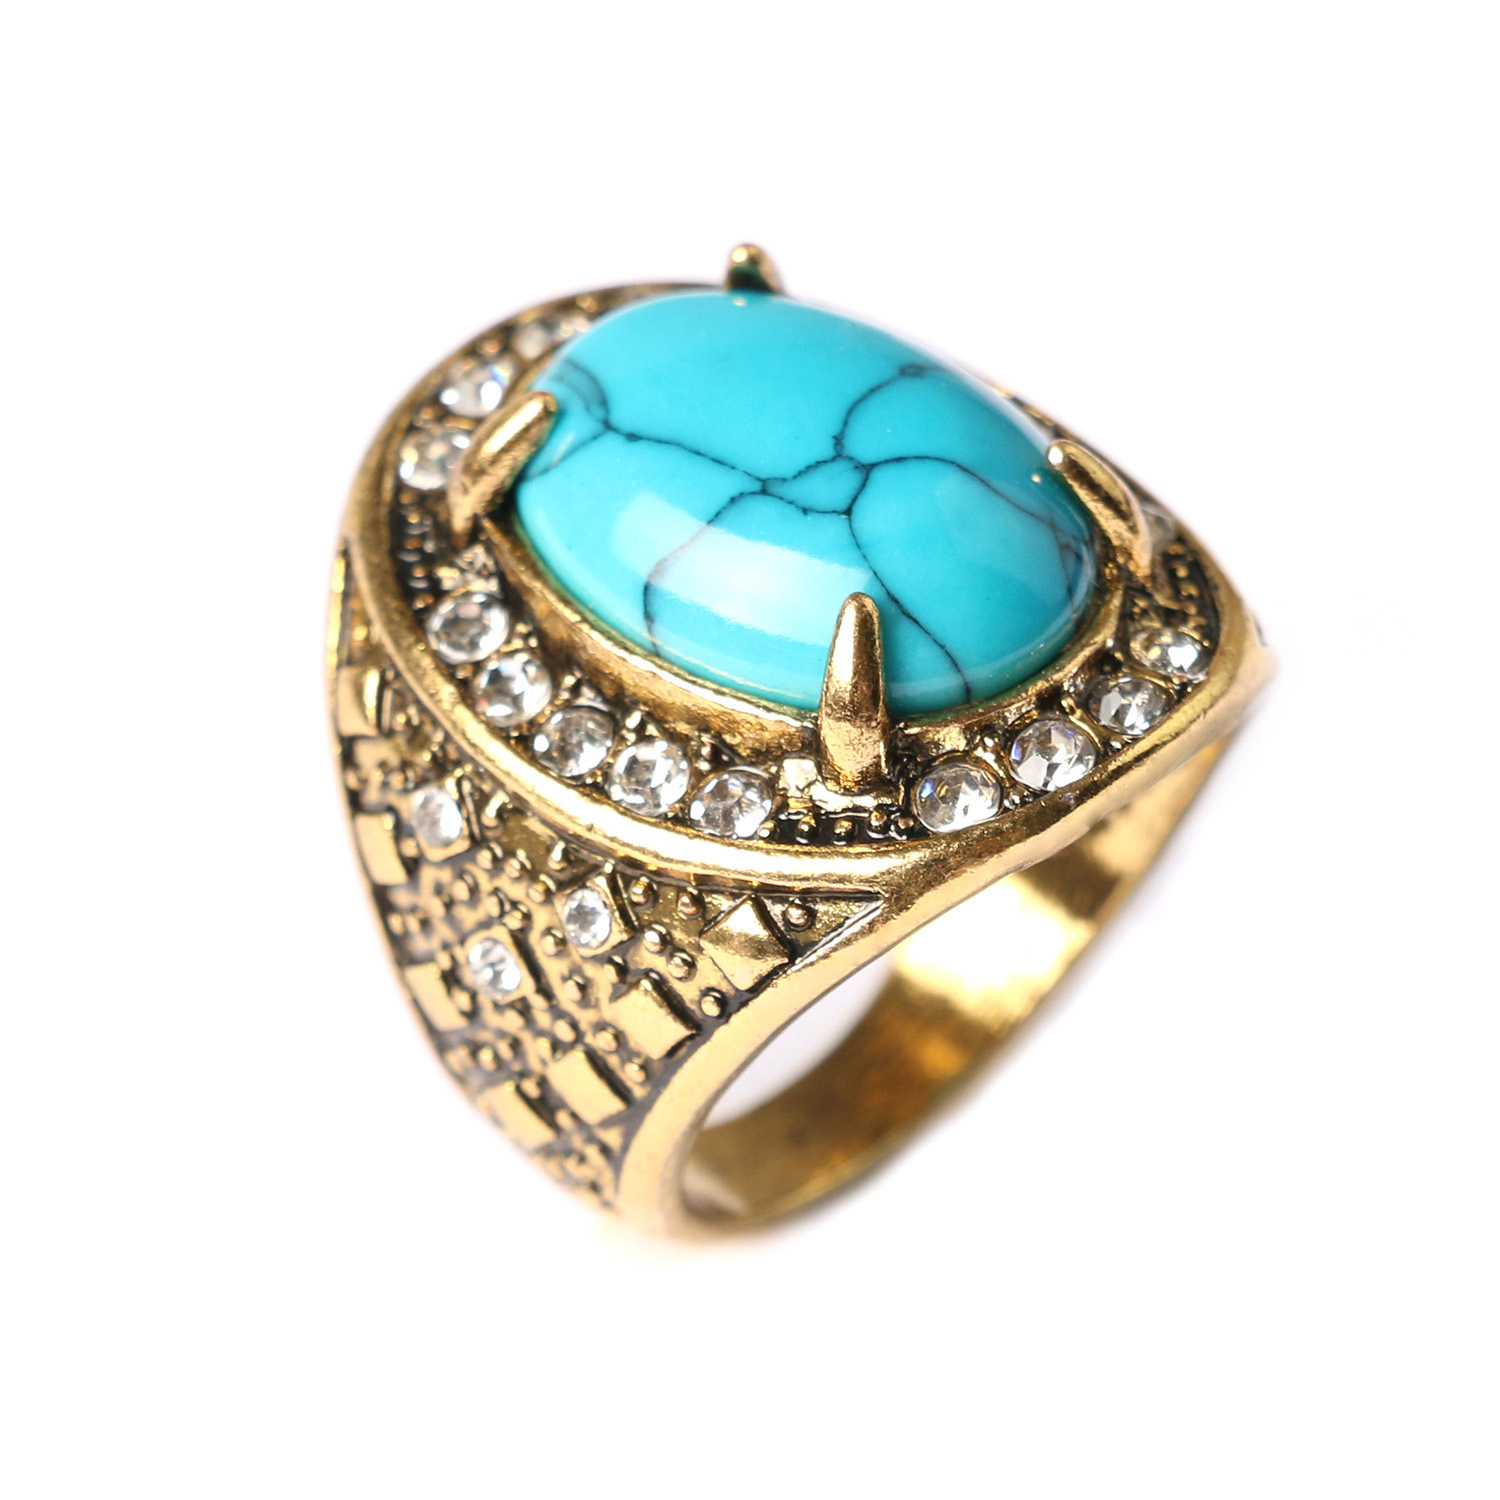 band rings ring page sleeping sterling com turquoise qvc silver beauty and stone product